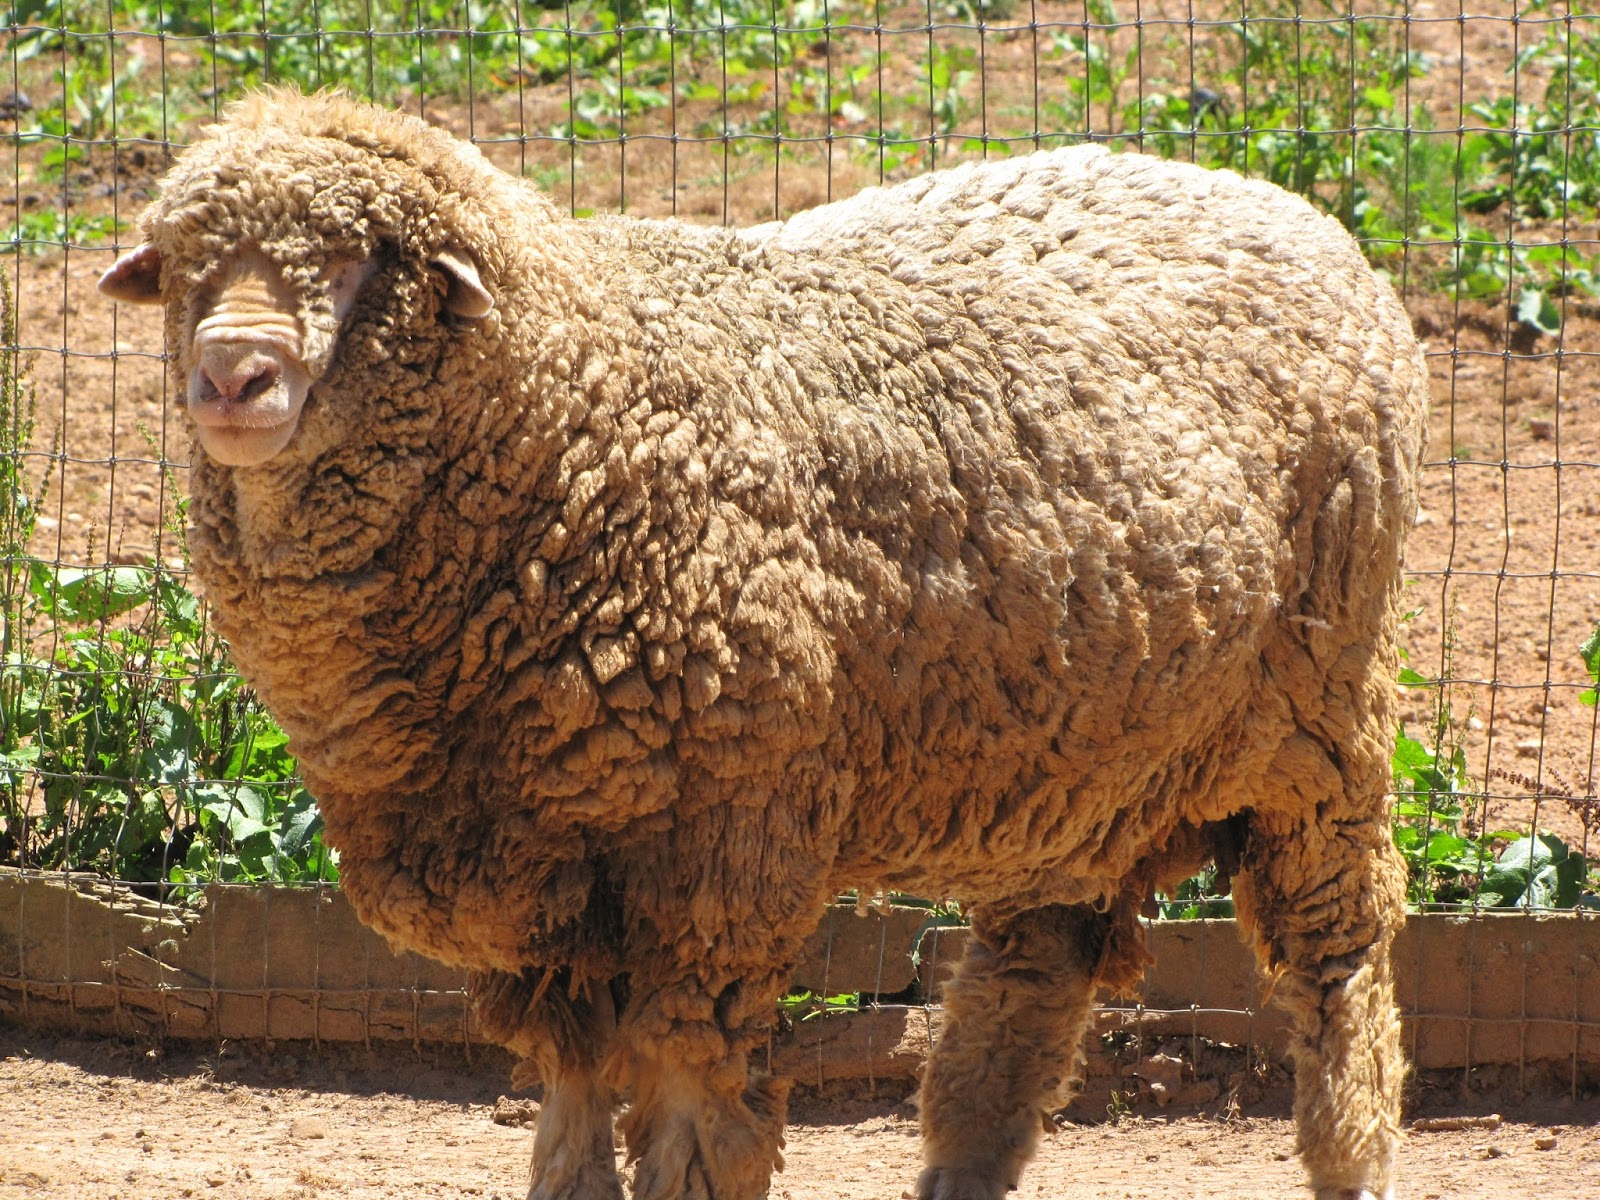 why does god call us sheep?